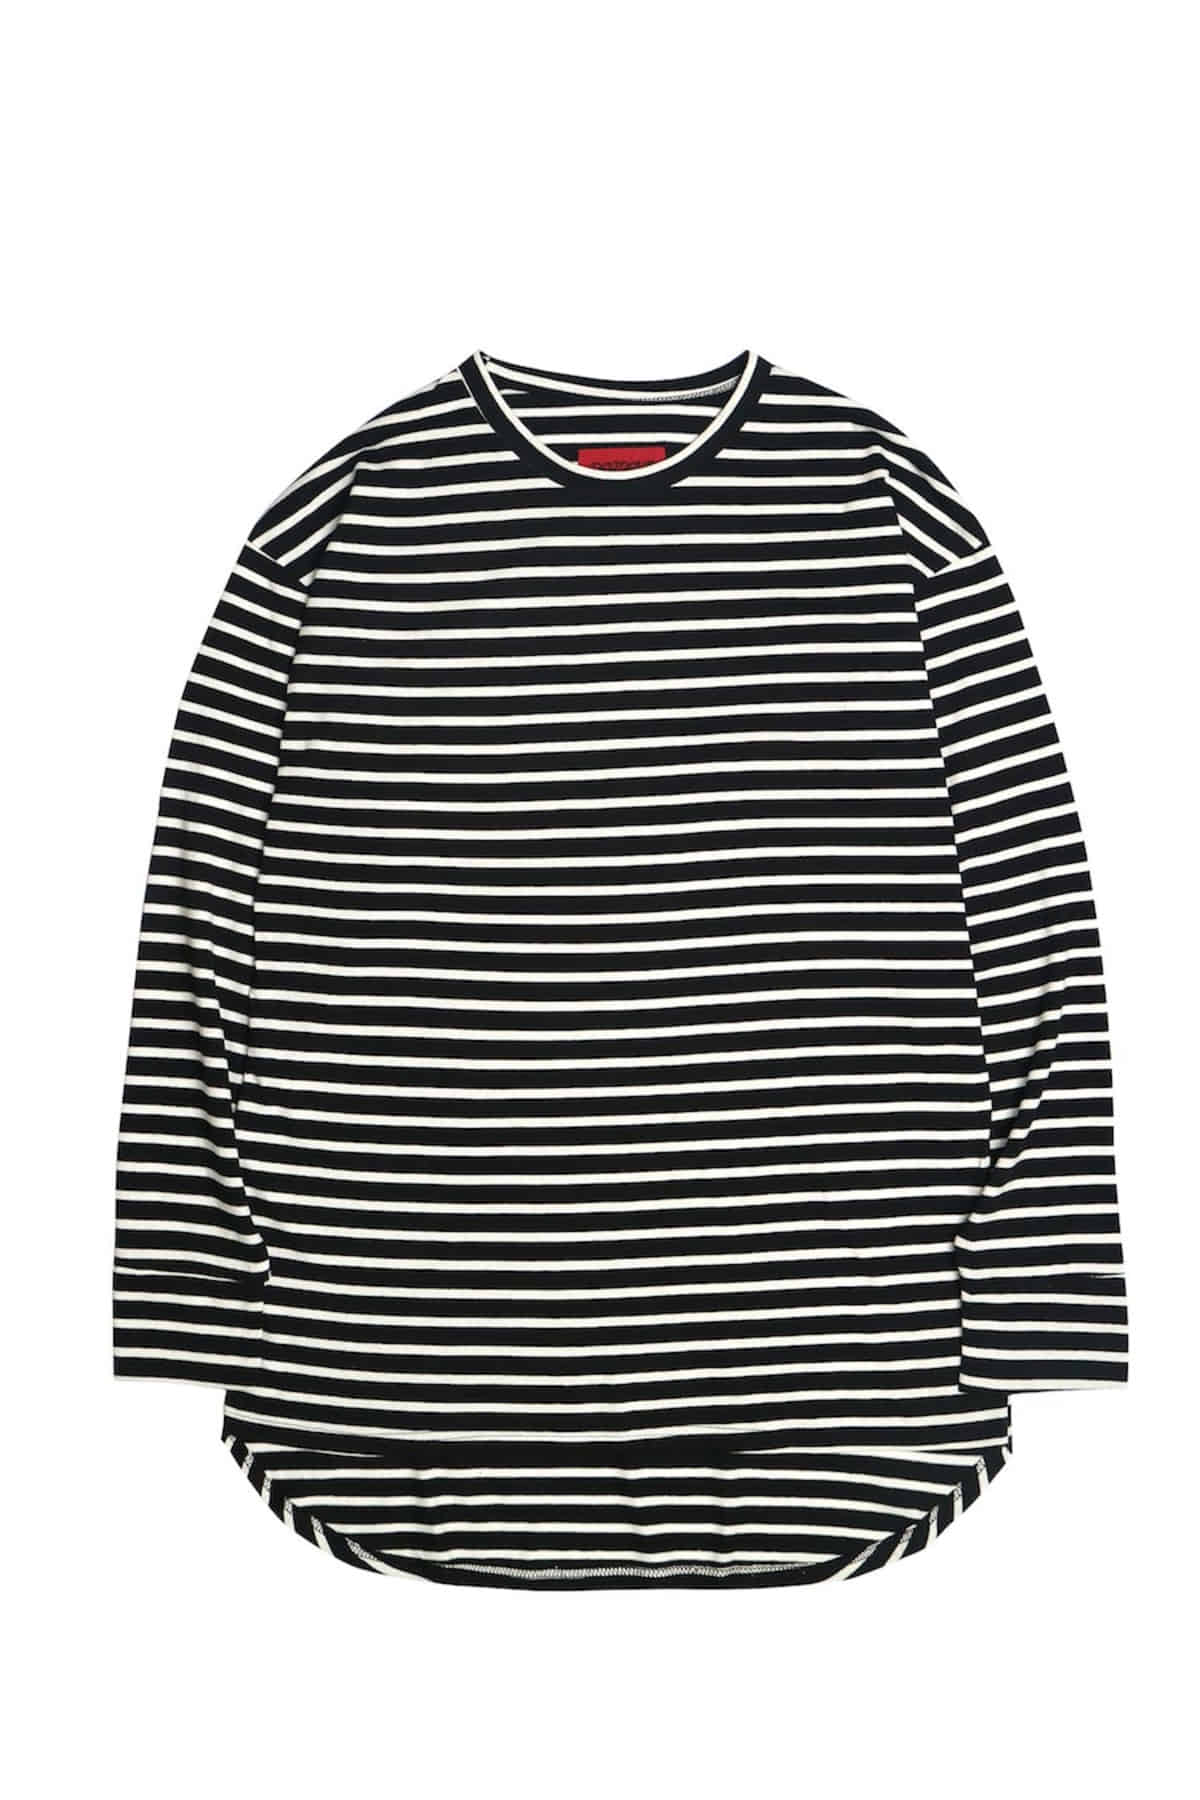 BLACK STRIPE IMBALANCE LONG SLV